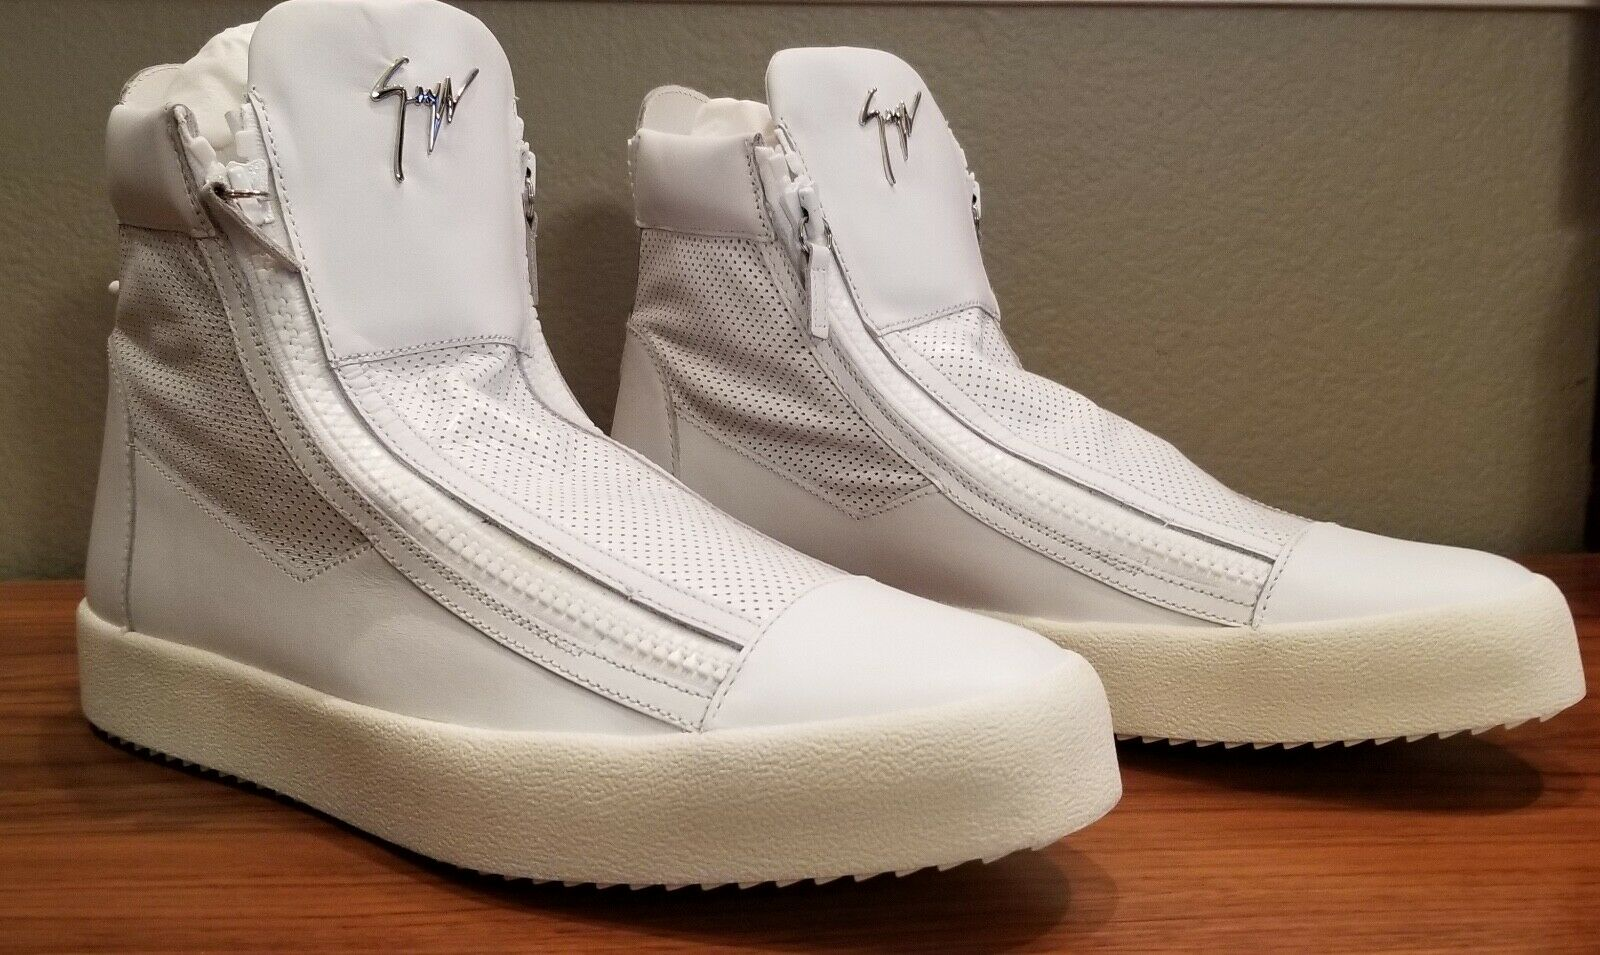 NIB Giuseppe High-Top Sneakers With Tags, White, ZIP, 47  14M US Orig